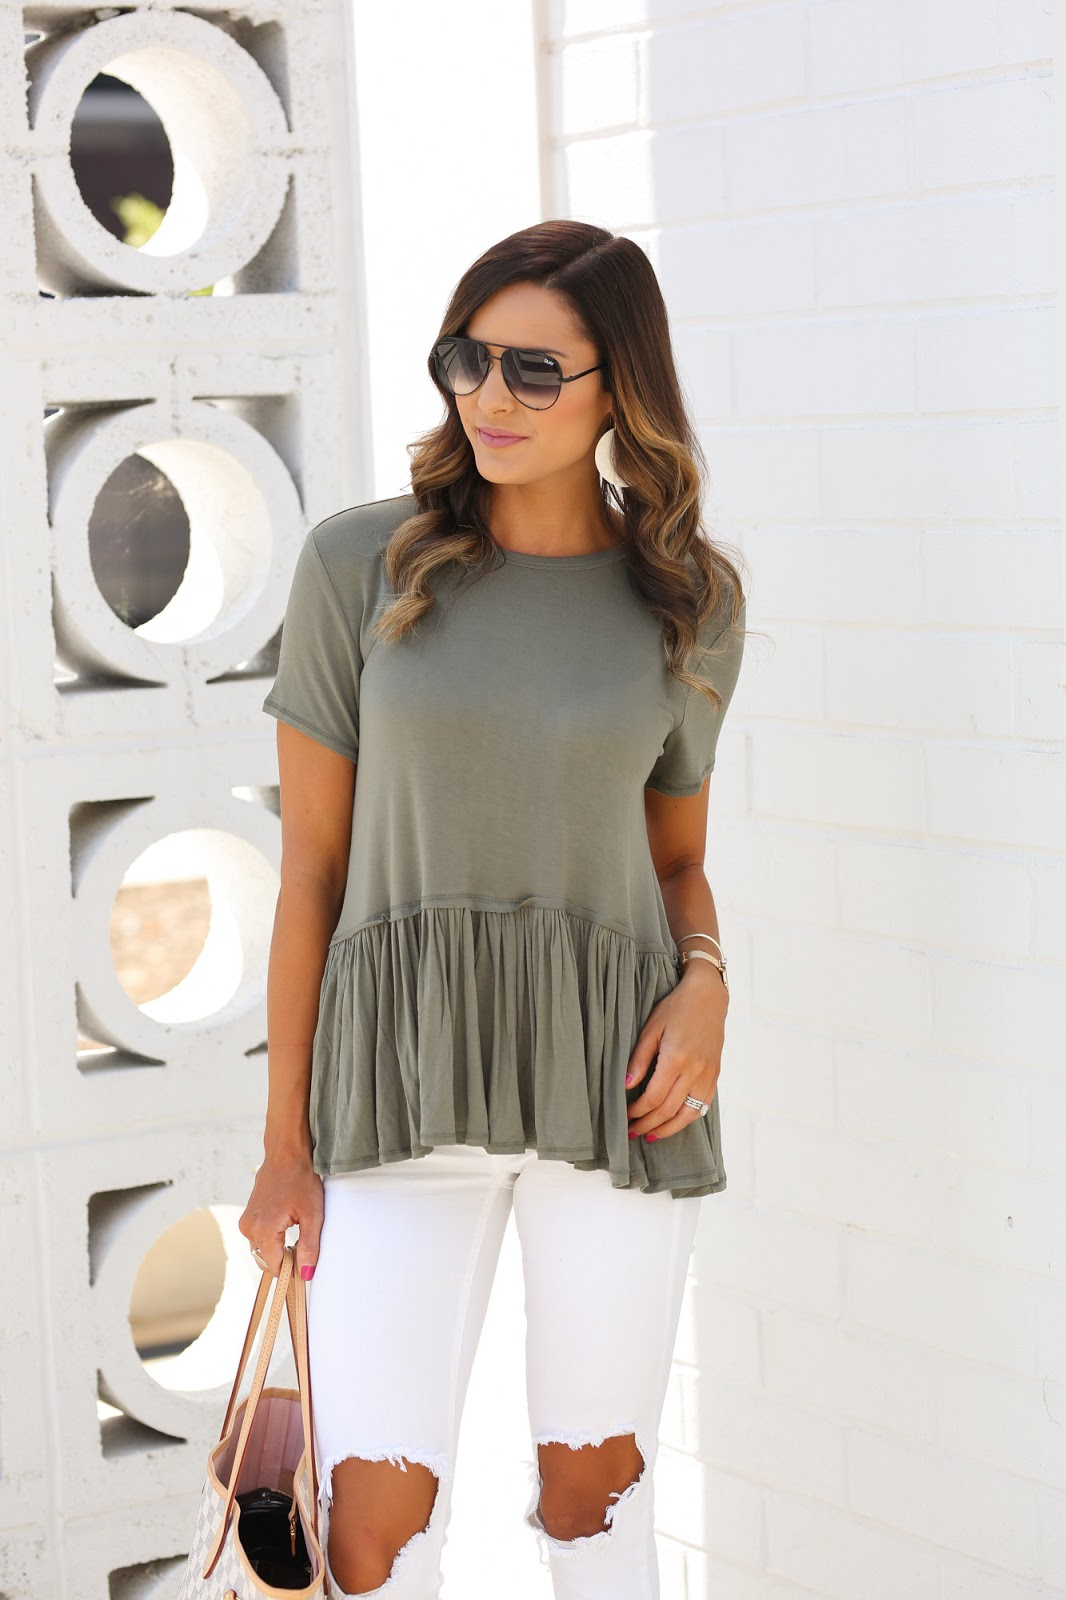 4a38bf0bdf9770 Top: Mason Peplum Top in Olive Green Also Available in Light Pink, Navy,  and Black // Pants: Busted Knee White Skinny Jeans Also Available Here //  Shoes: ...